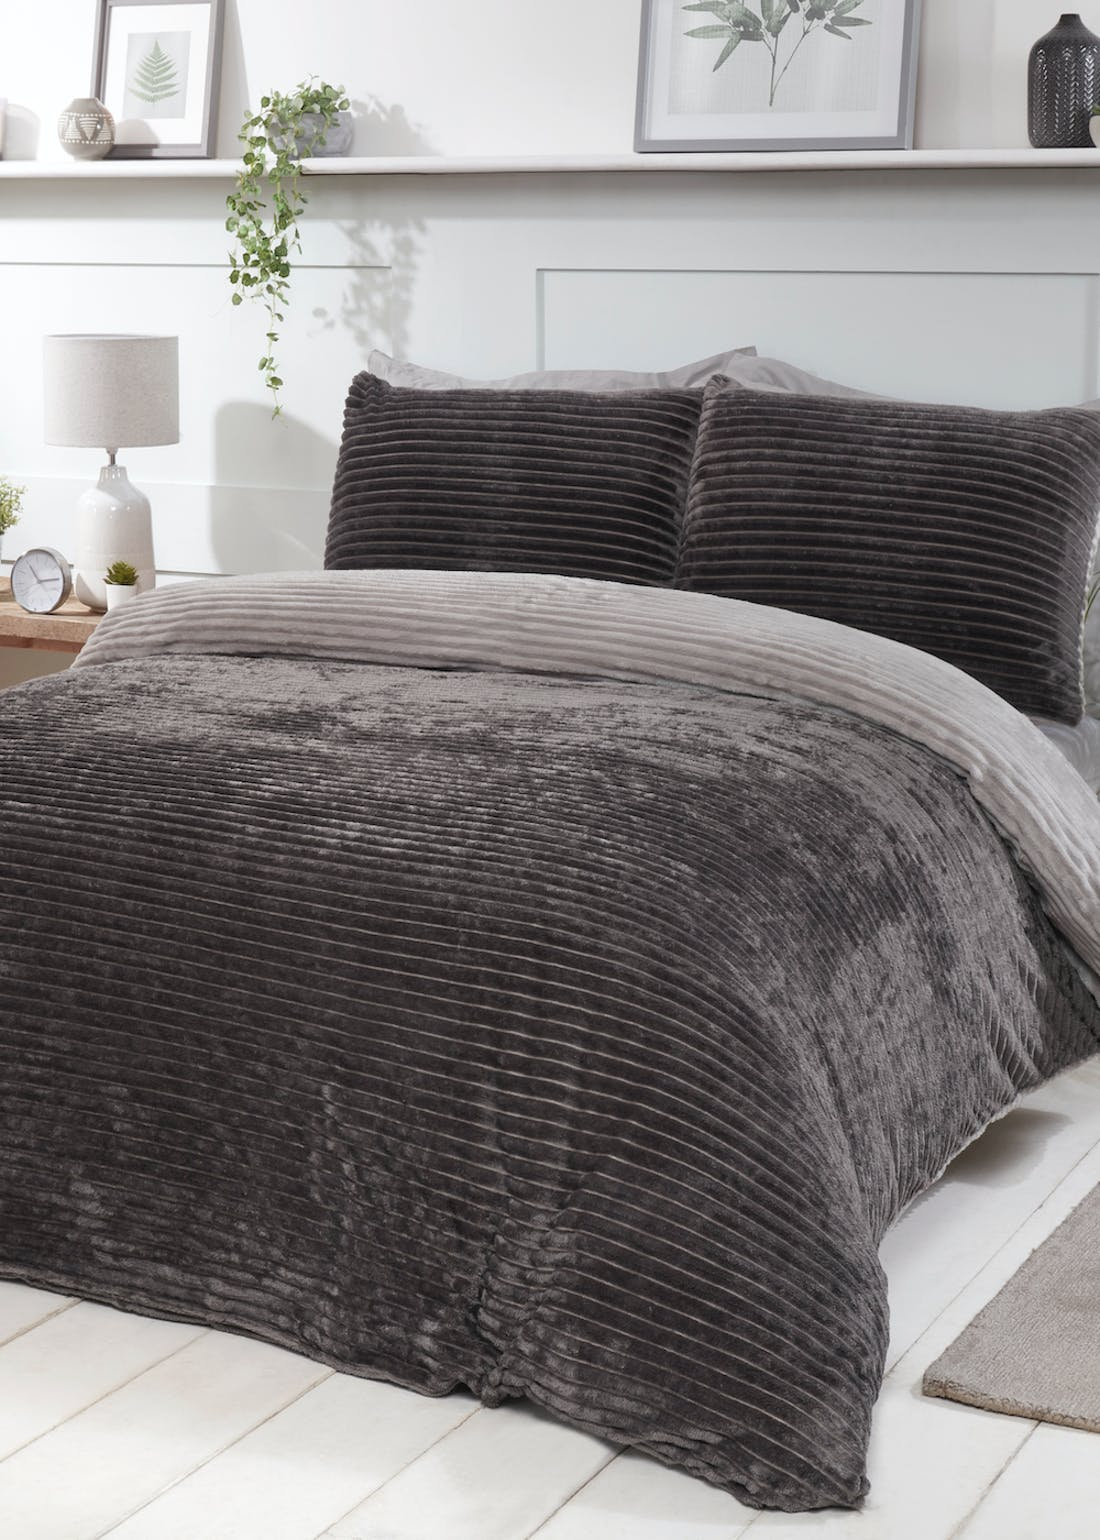 Sleepdown Ribbed Fleece Duvet Cover